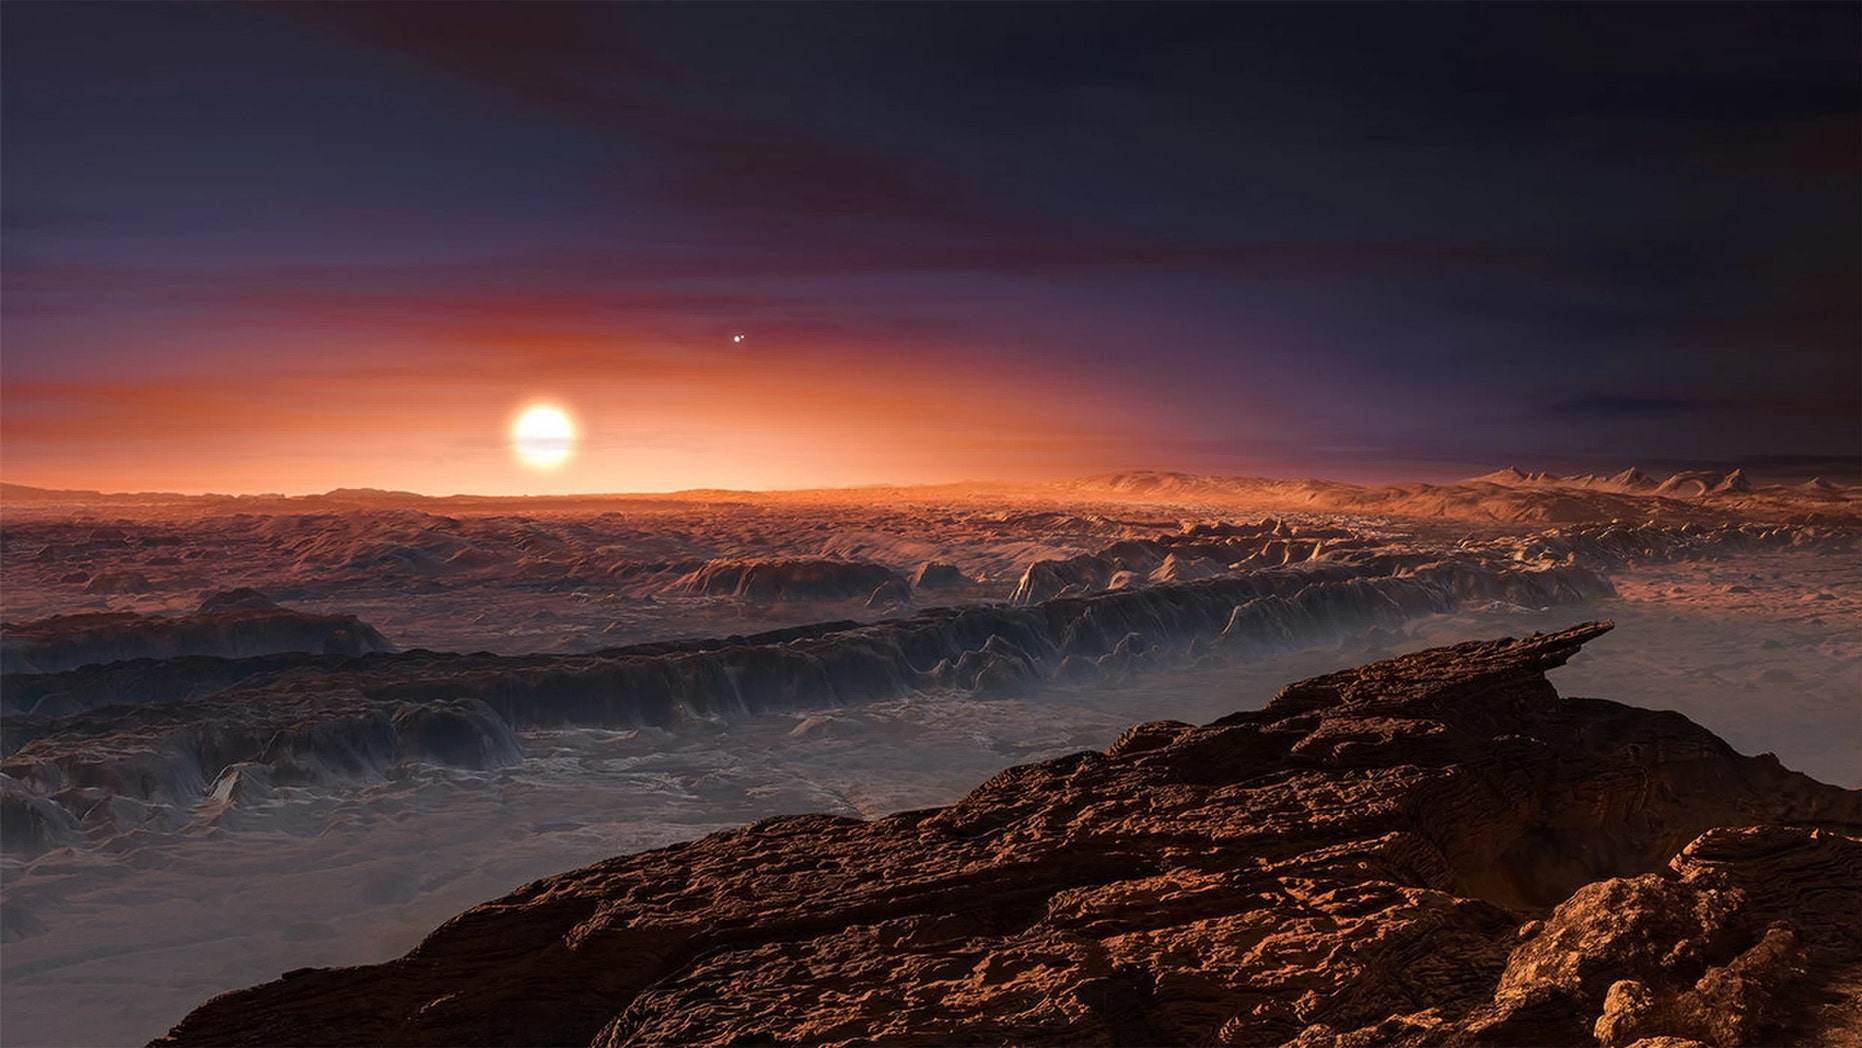 An artist's impression of the view from Proxima Centarui b, a newly discovered Earth-sized planet just four light-years away. It is unclear if there is intelligent life in the universe, but searches continue to find Earth-sized planets in the habitable zones of their respective stars. (Credit: NASA)